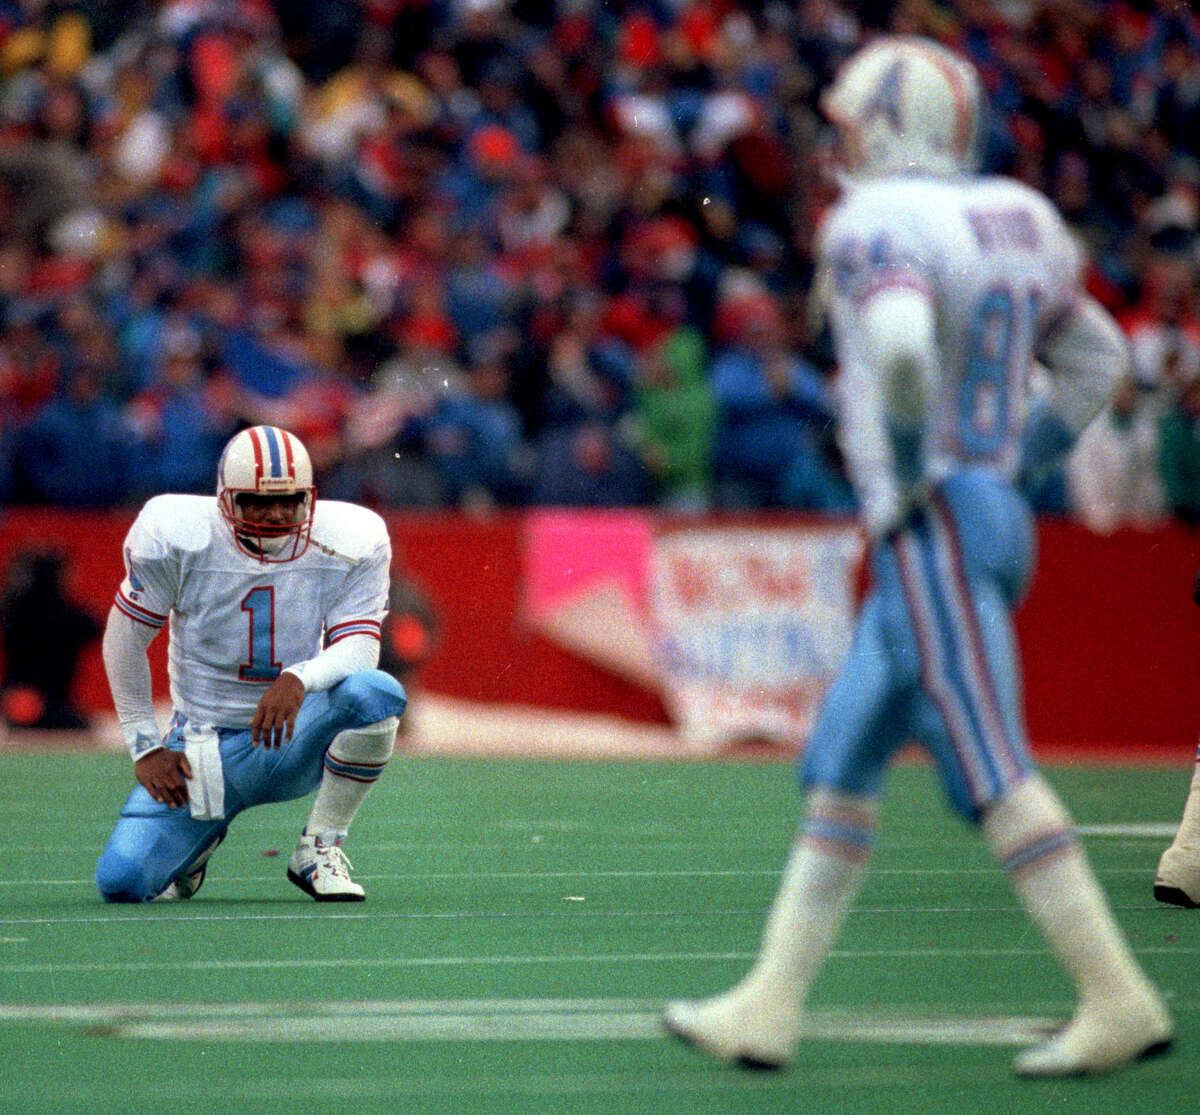 The Oilers' 1992 AFC wild-card collapse and loss at Buffalo remains one of Houston sports' toughest gut punches, if not the worst.